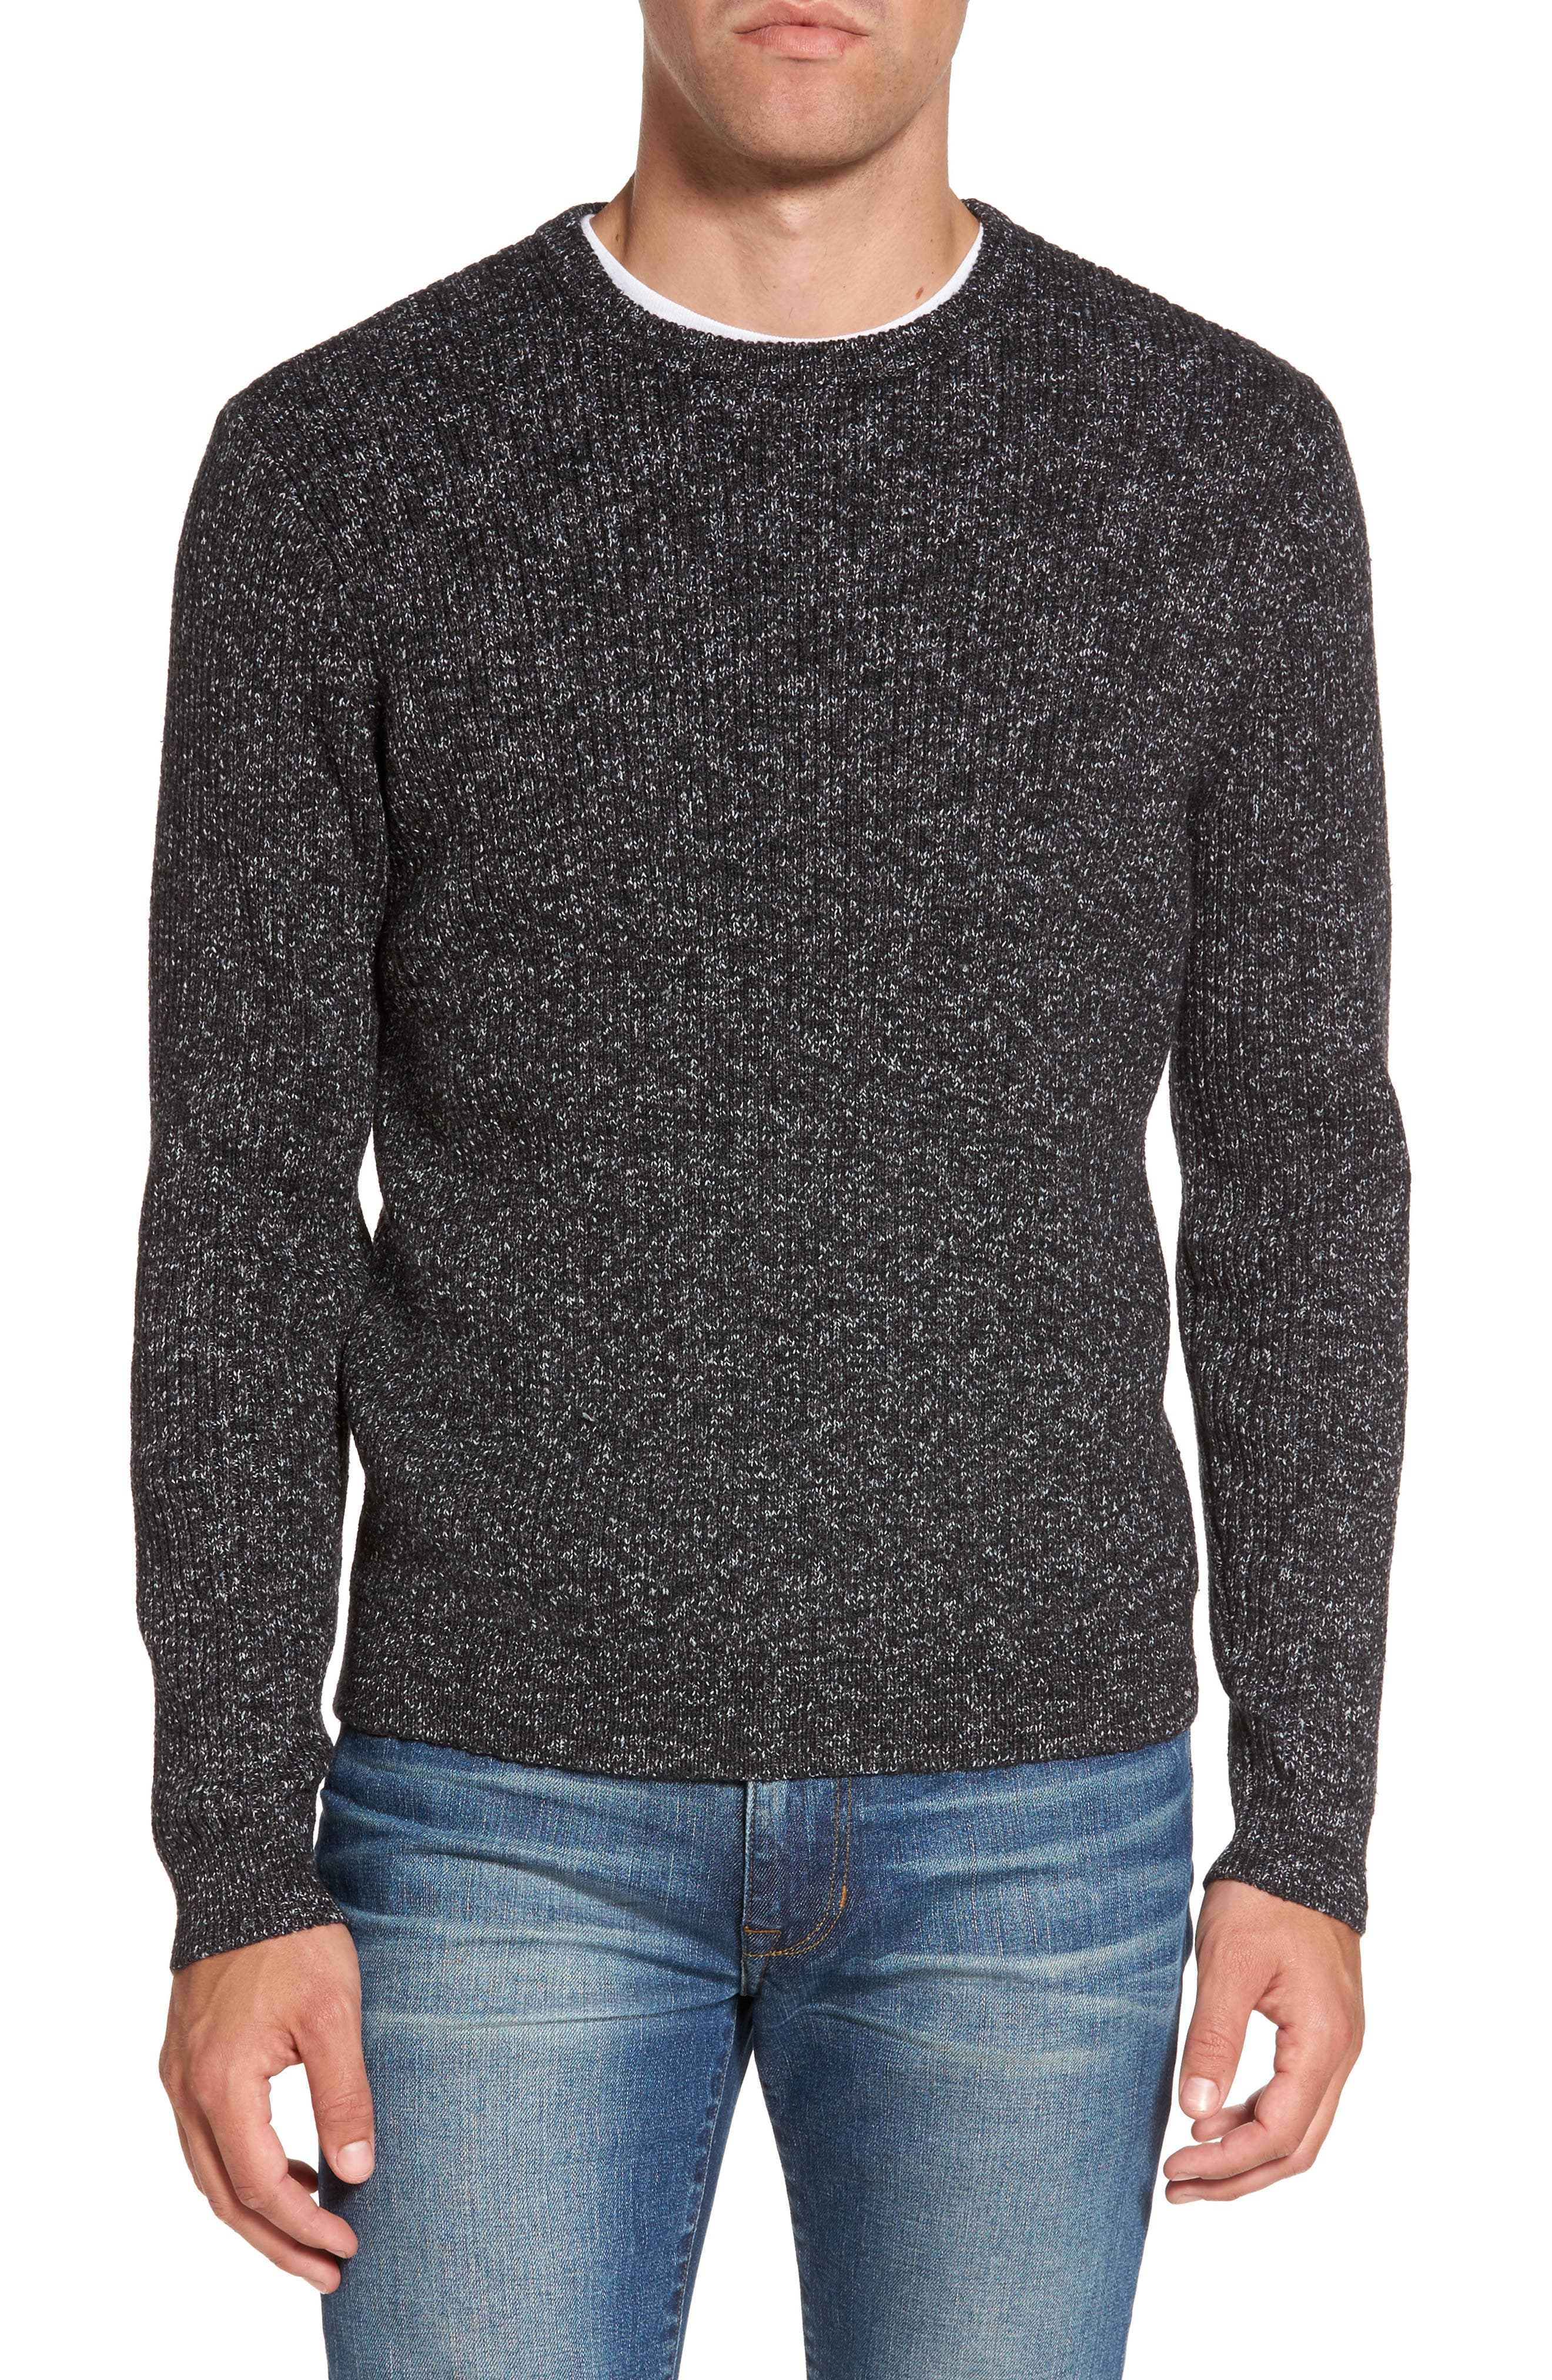 Donegal Space Dye Nep Sweater,                         Main,                         color, Charcoal Donegal